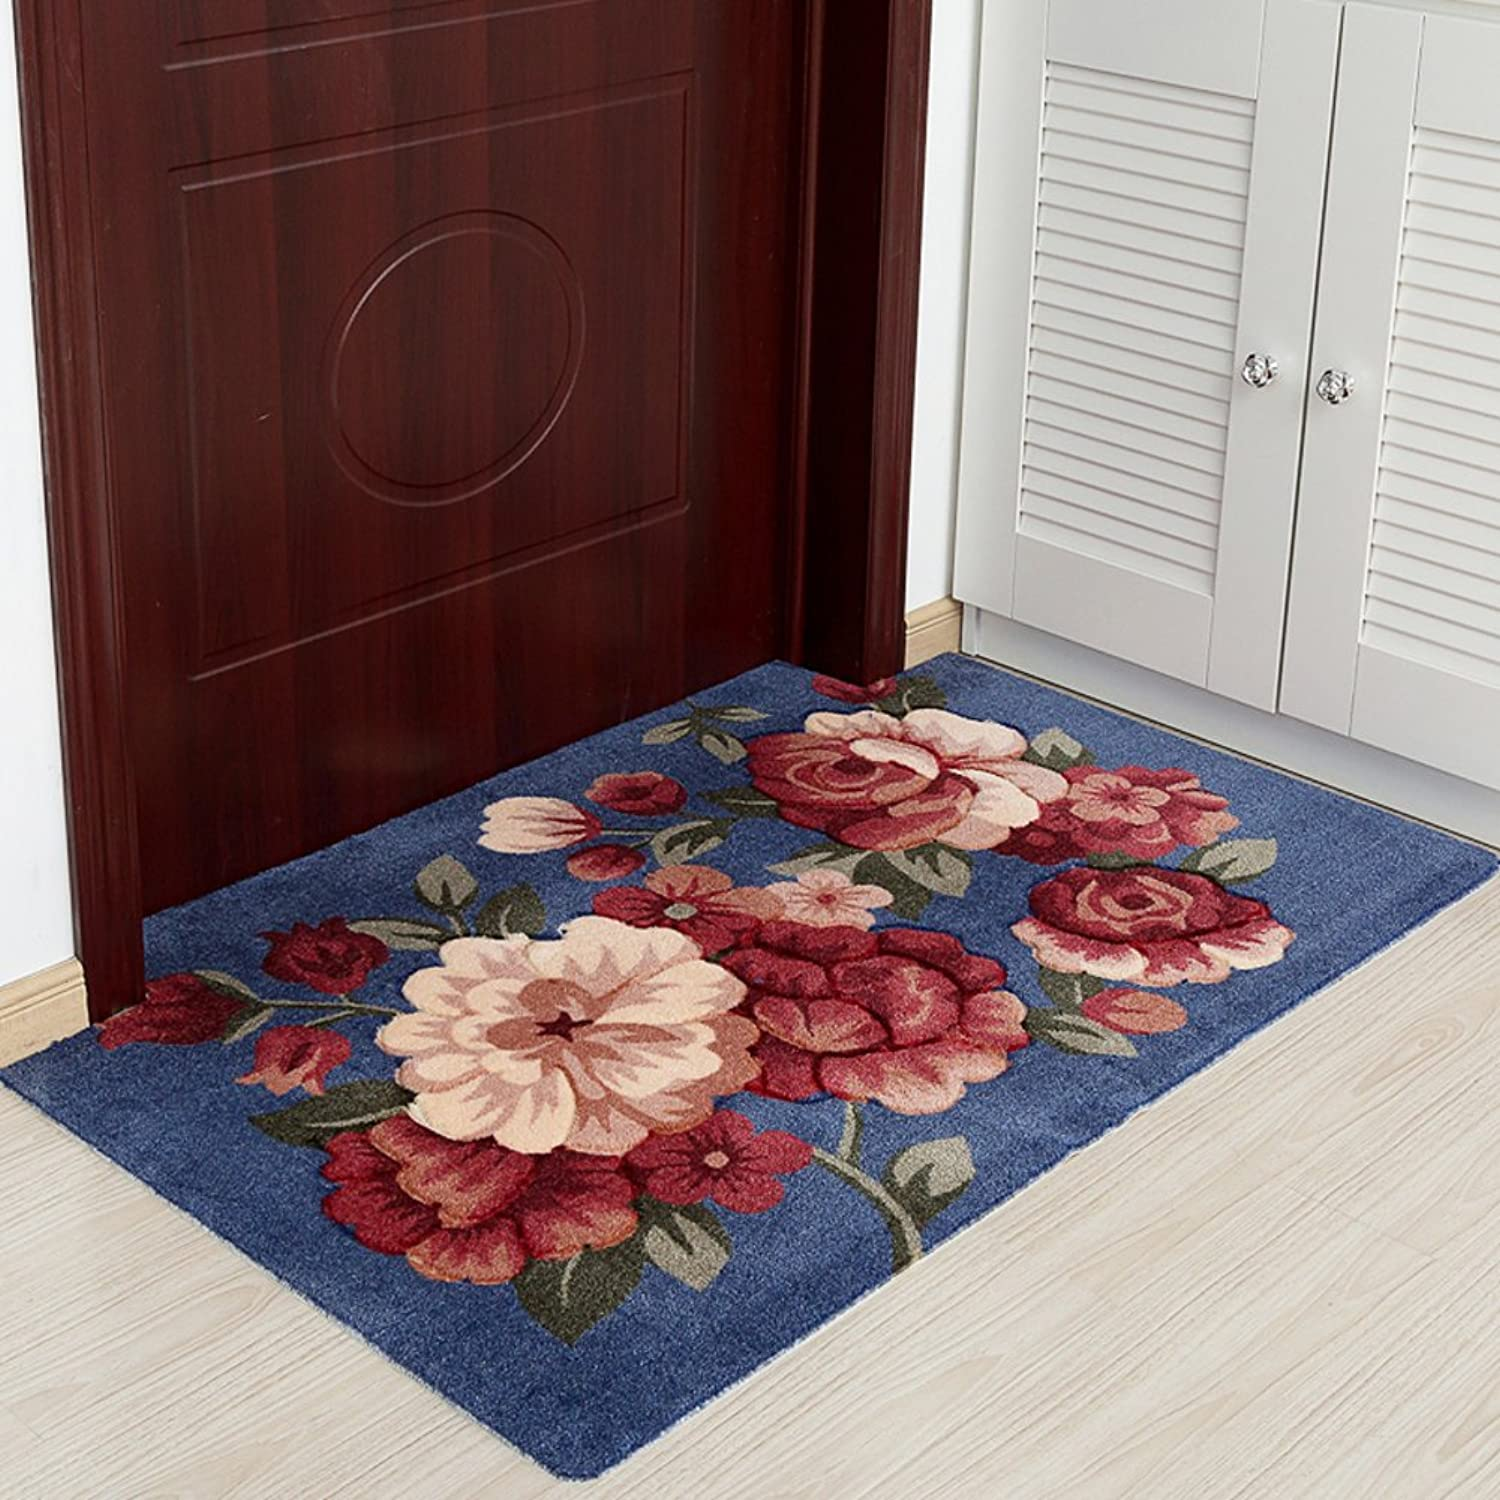 GUOSHIJITUAN Anti Slip Modern Carpet,Doormat Carpet for Hall Bedroom Living Room Rugs-E 80x120cm(31x47inch)